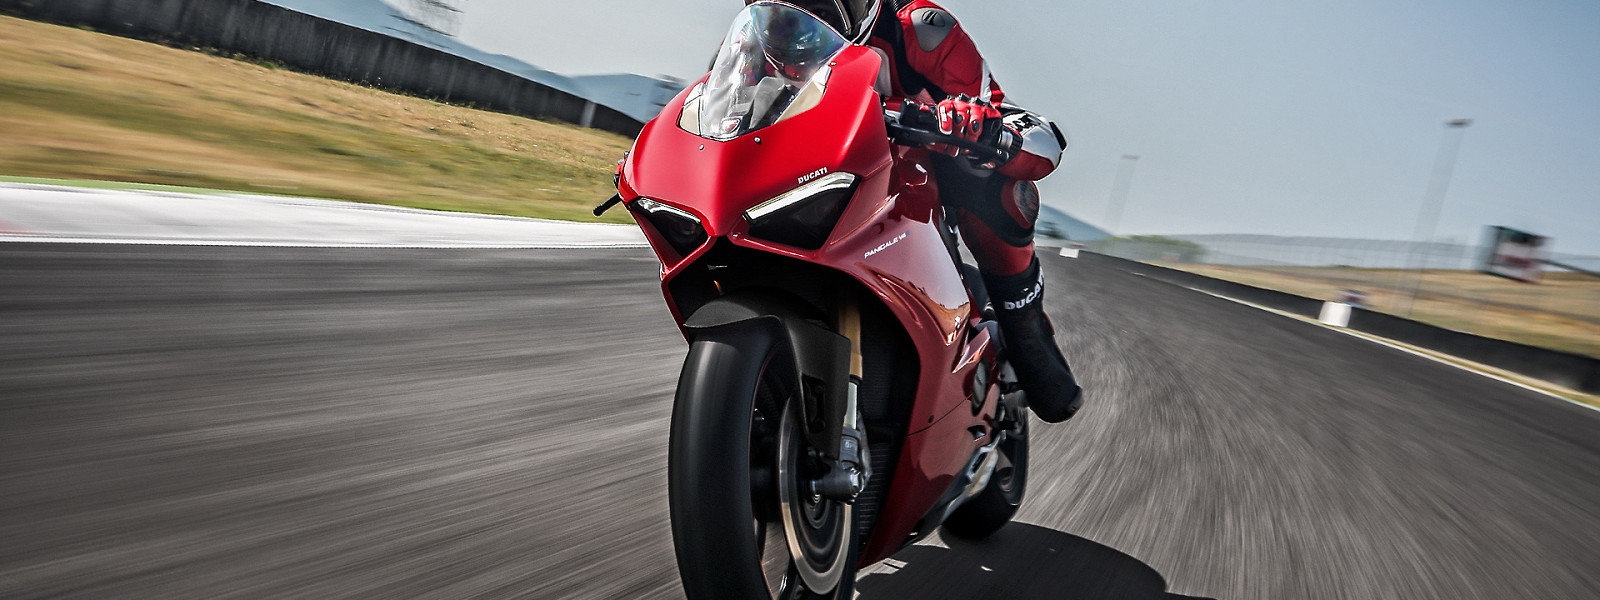 Panigale V4 MY18 Red 07 Slider Gallery 1920x1080